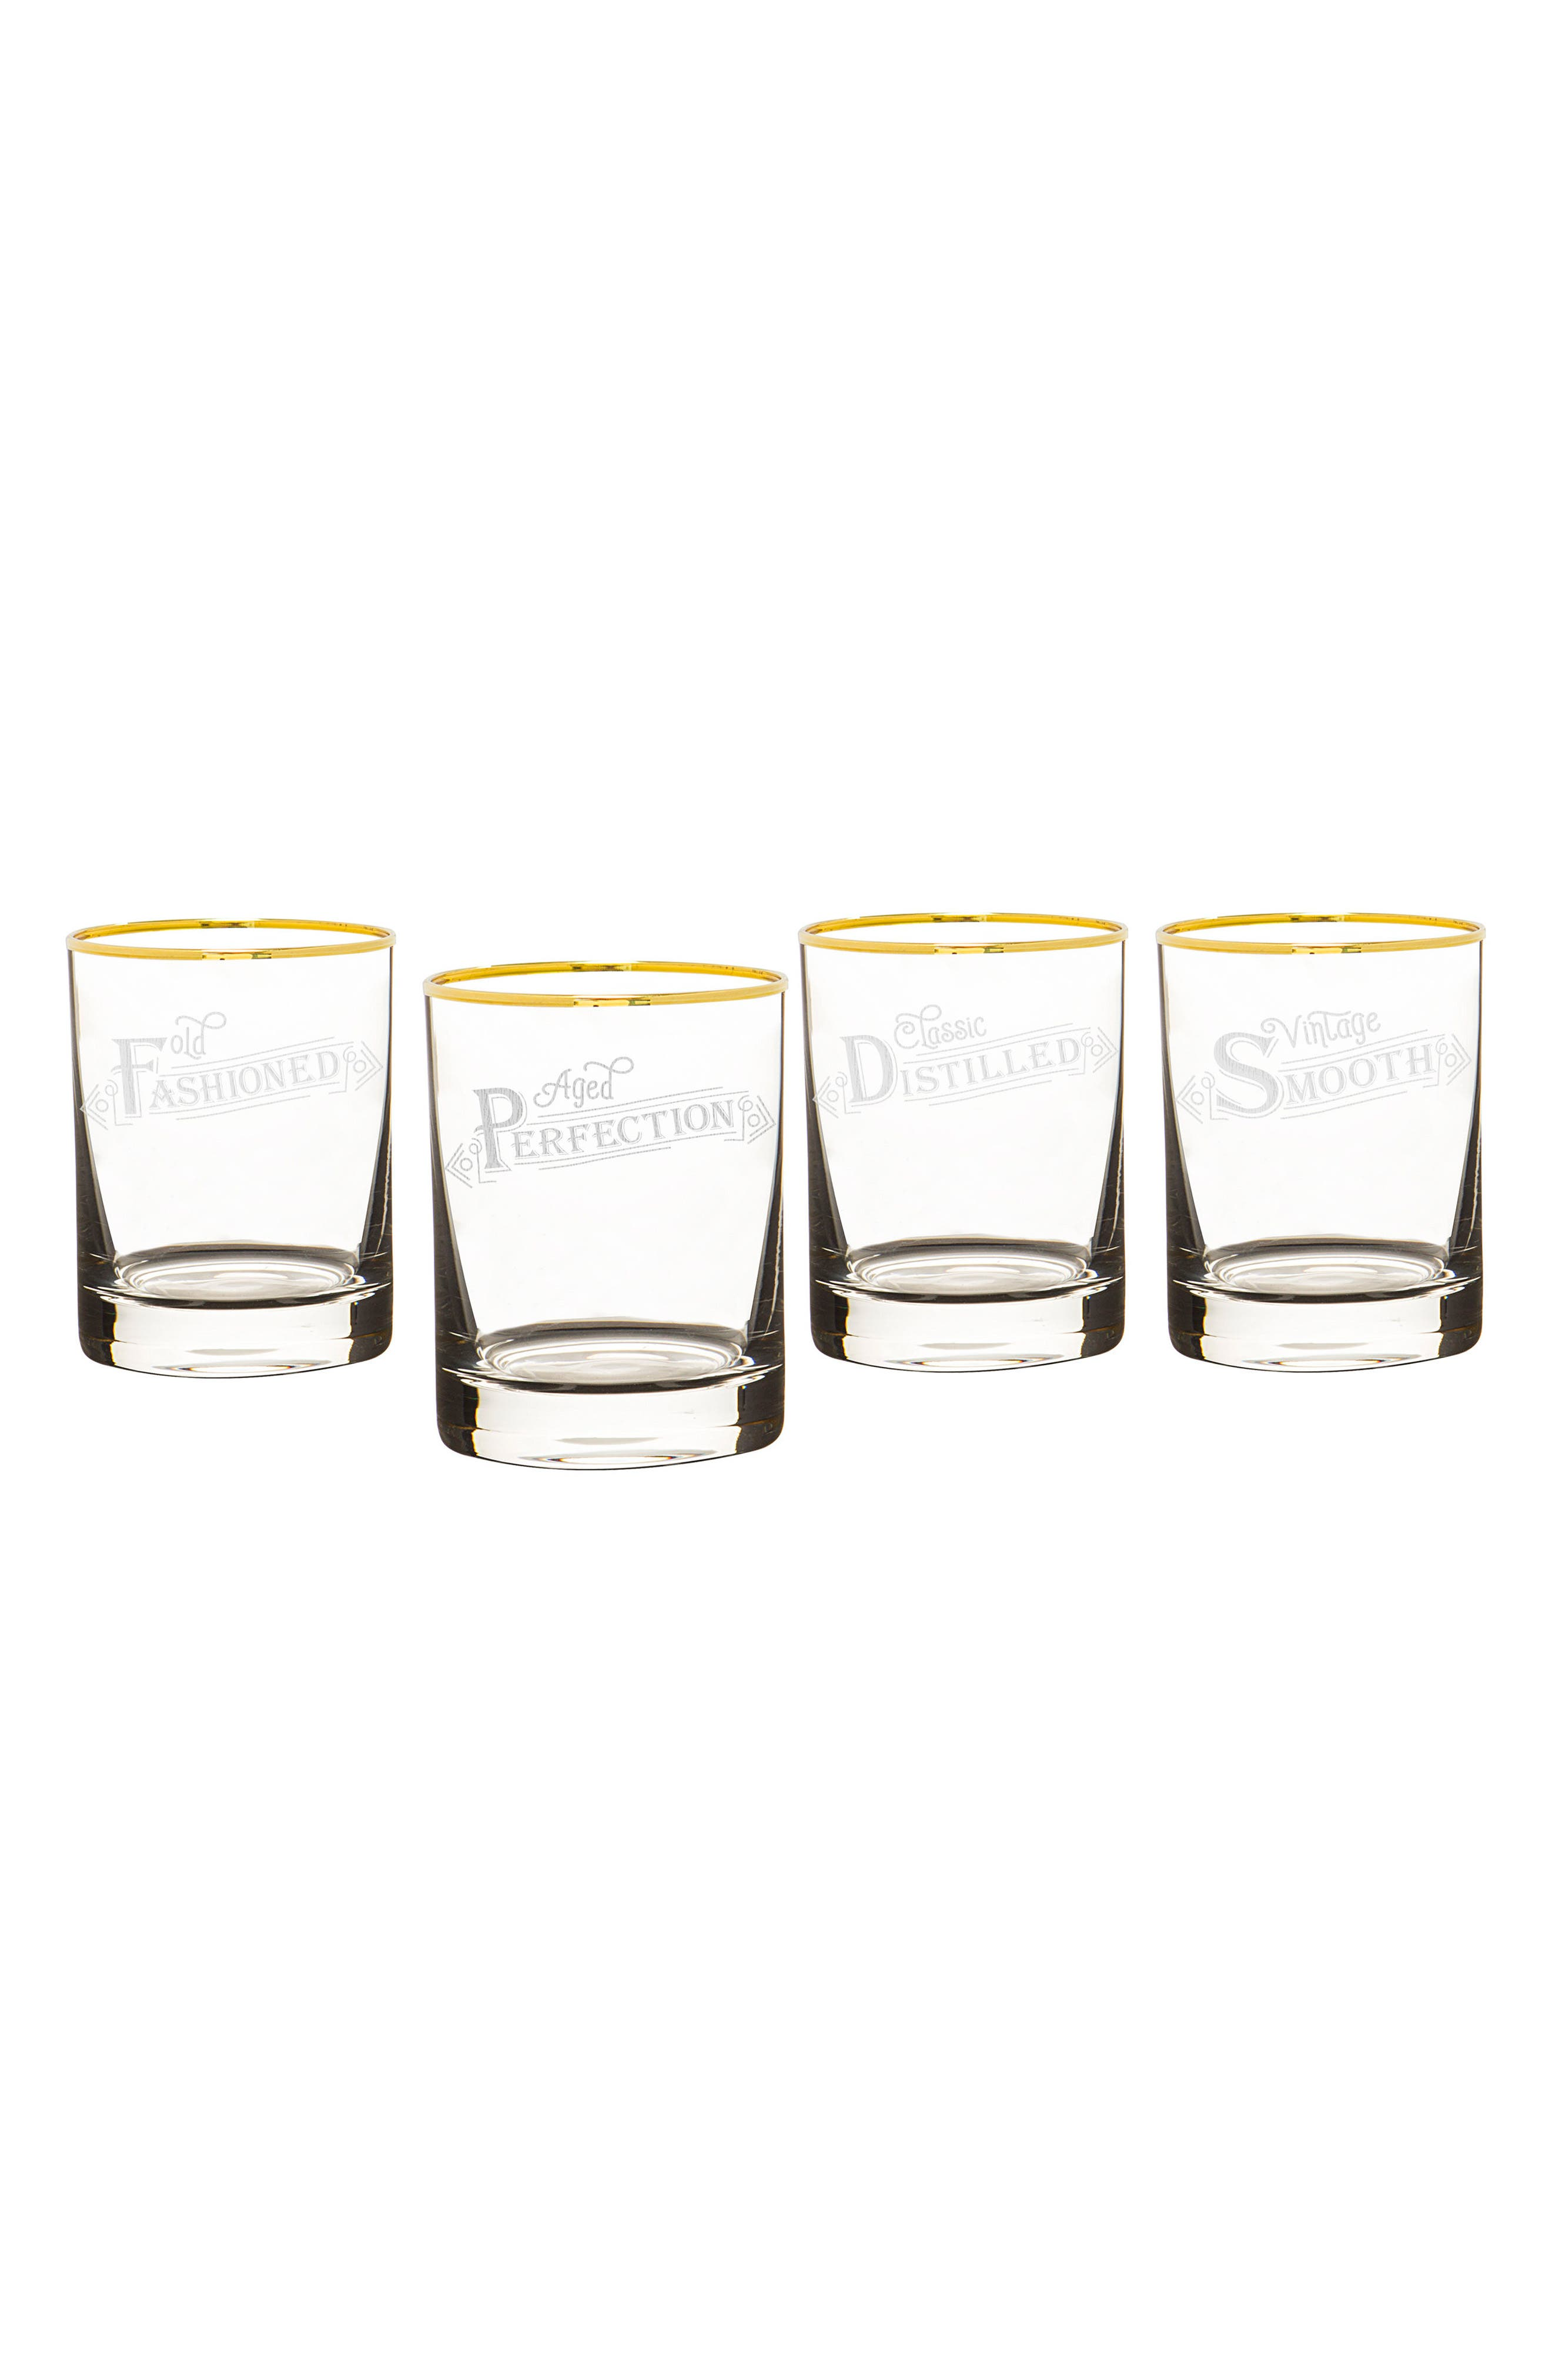 Set of 4 Gold Rim Old Fashioned Whiskey Glasses,                             Main thumbnail 1, color,                             Gold